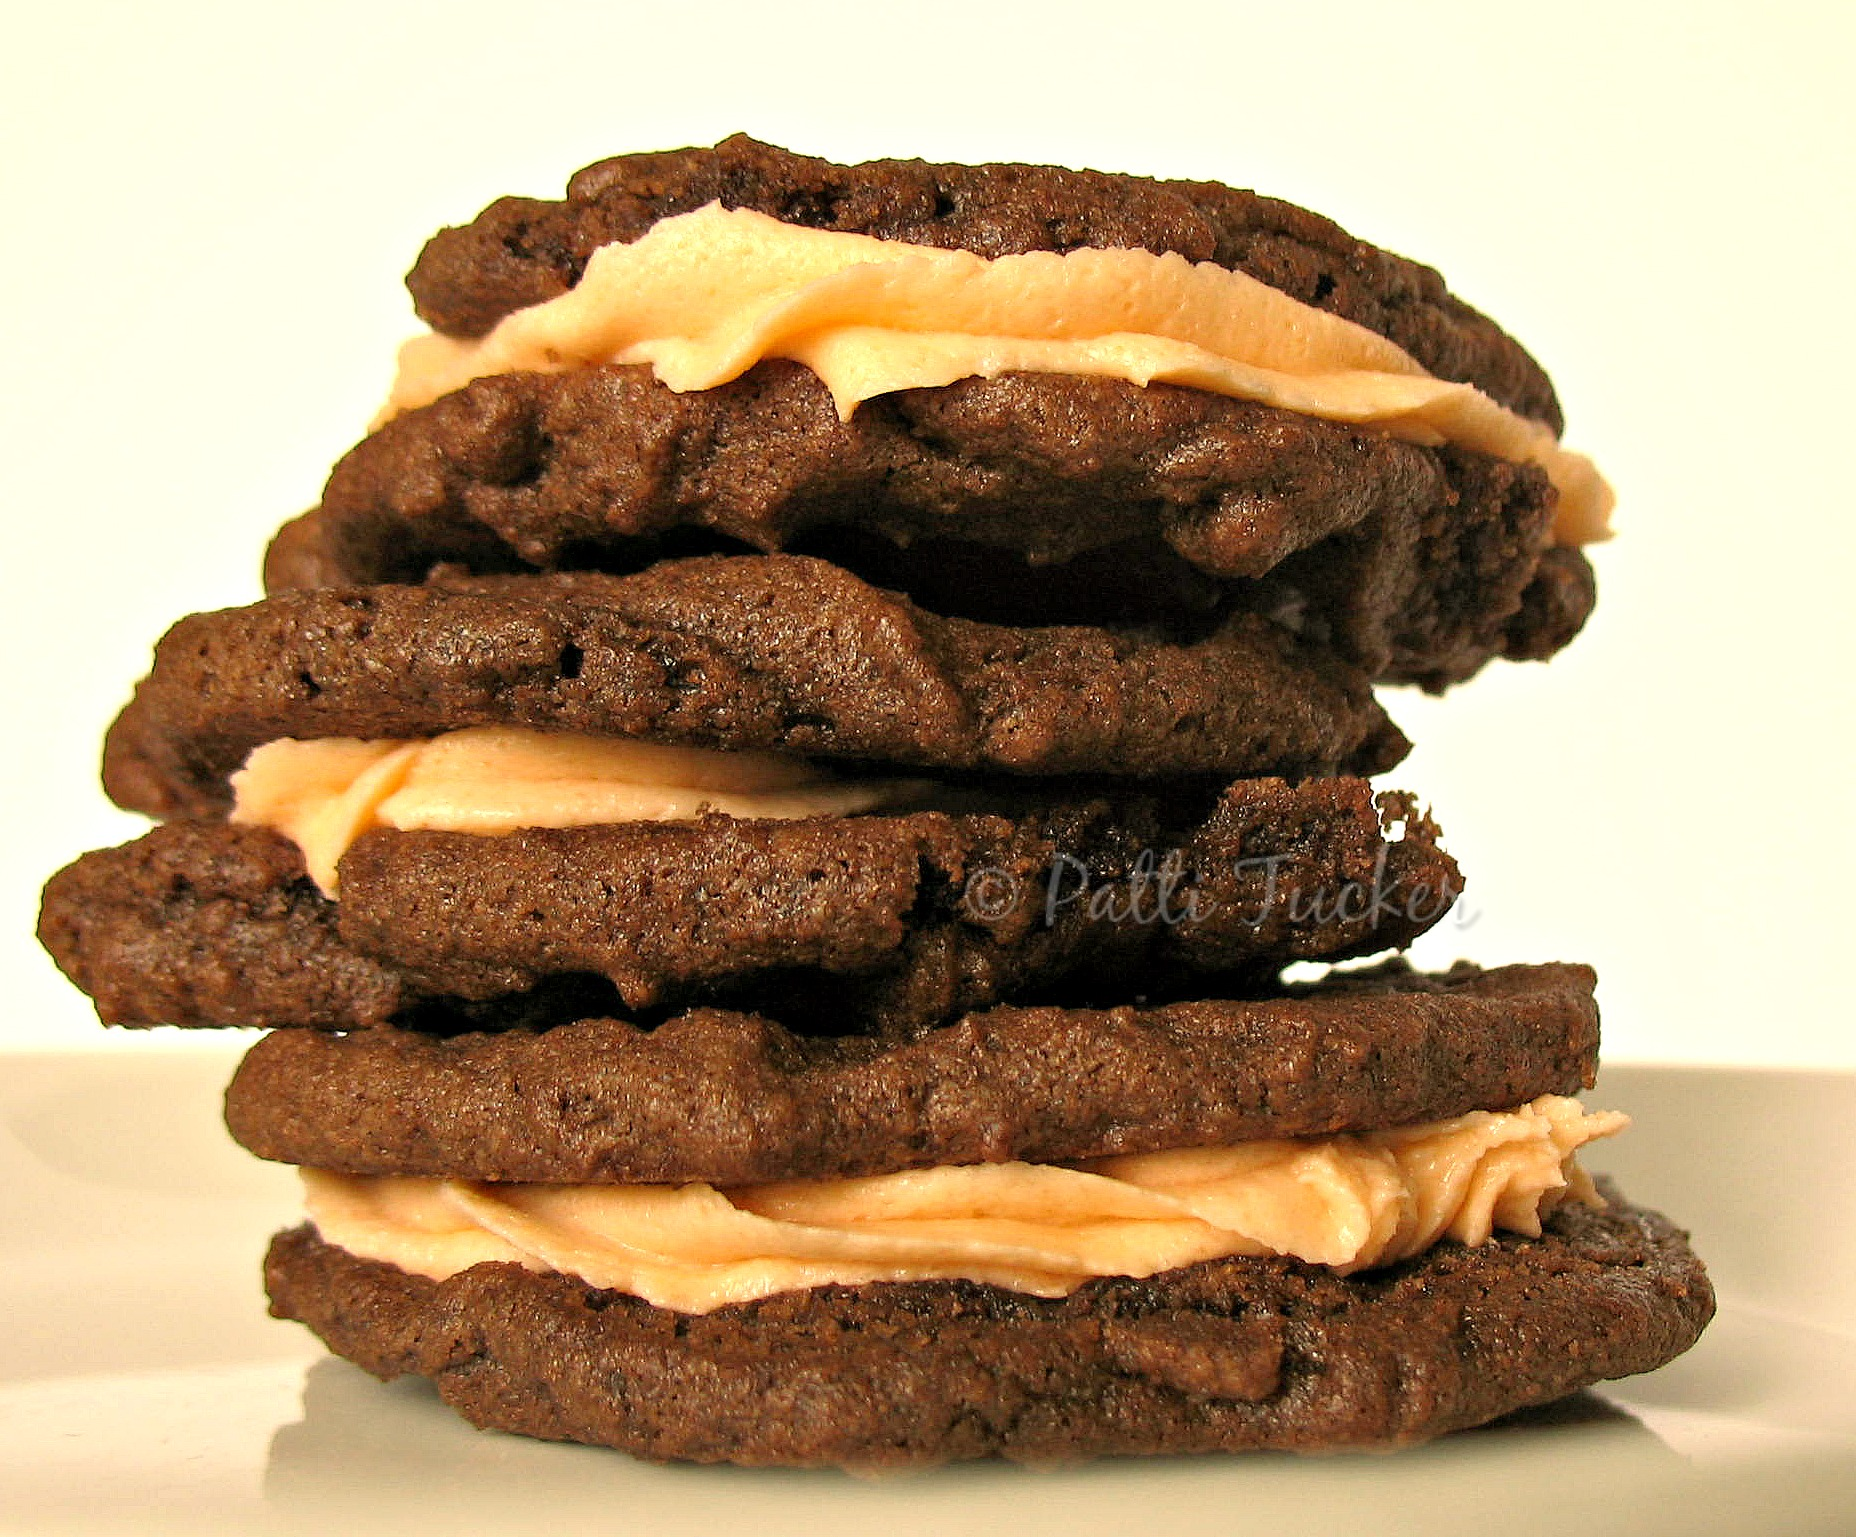 stack of The Best Filled Chocolate Cookies